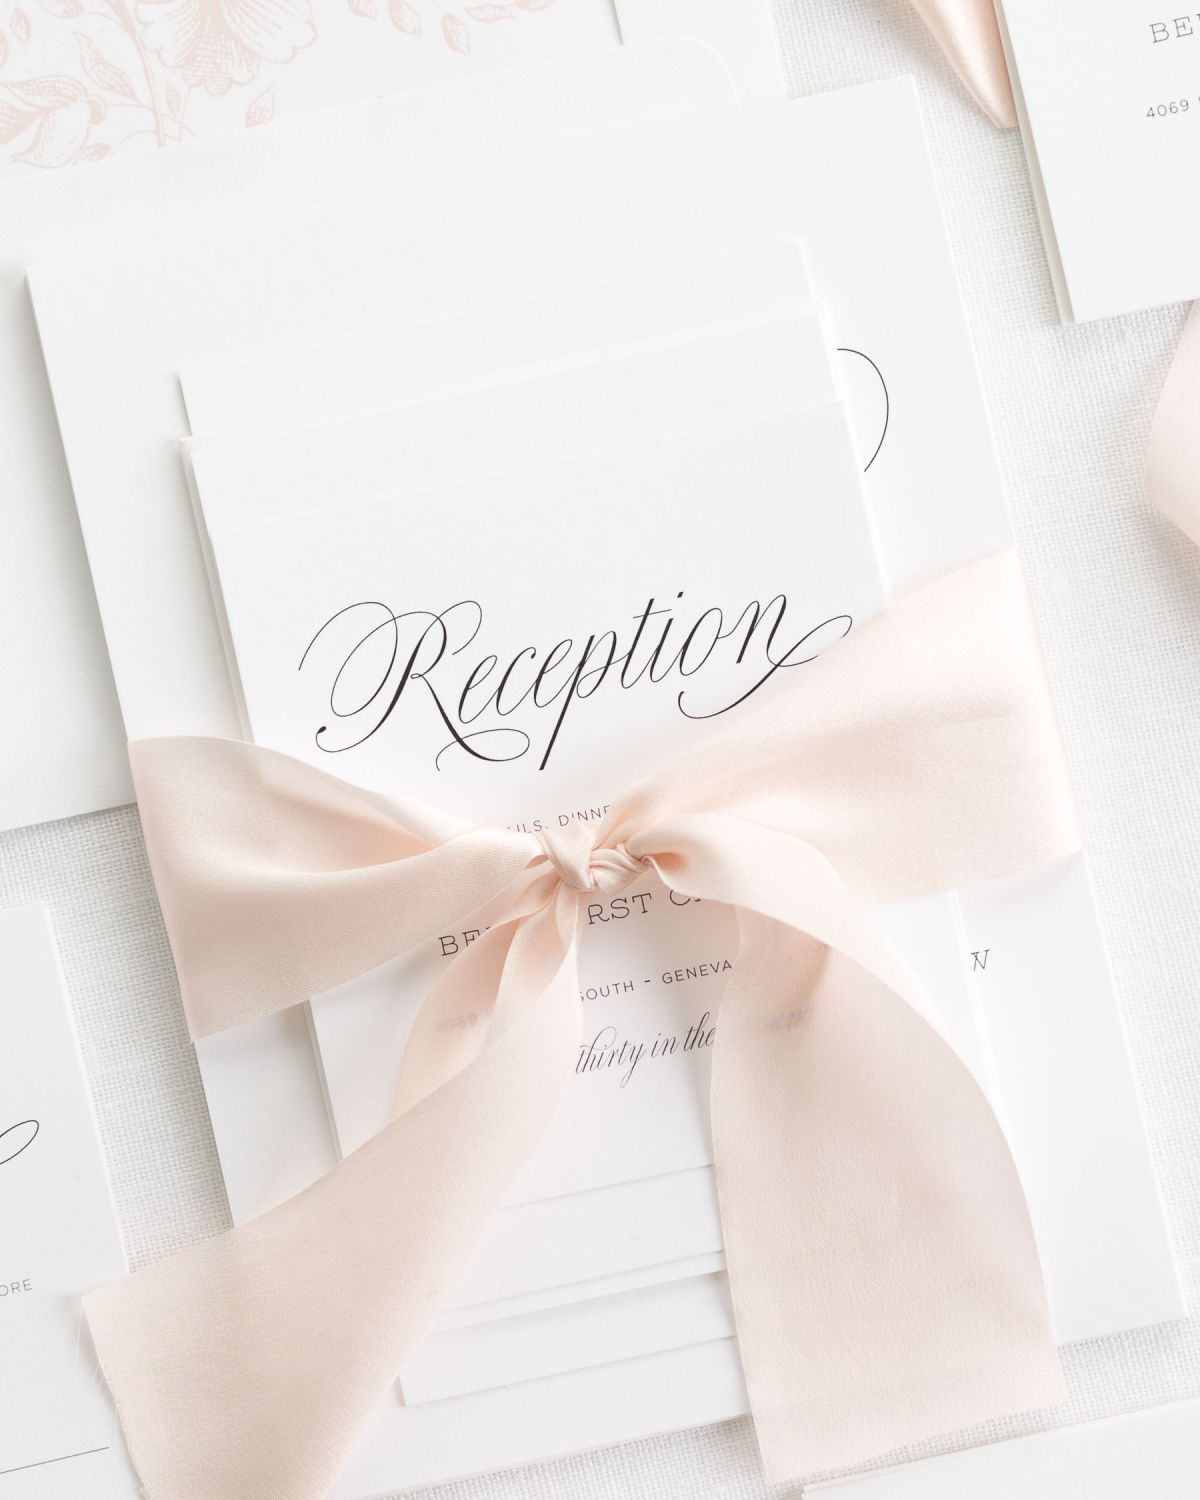 Rose Gold Wedding Invitations with Silk Ribbon and a Floral Envelope Liner